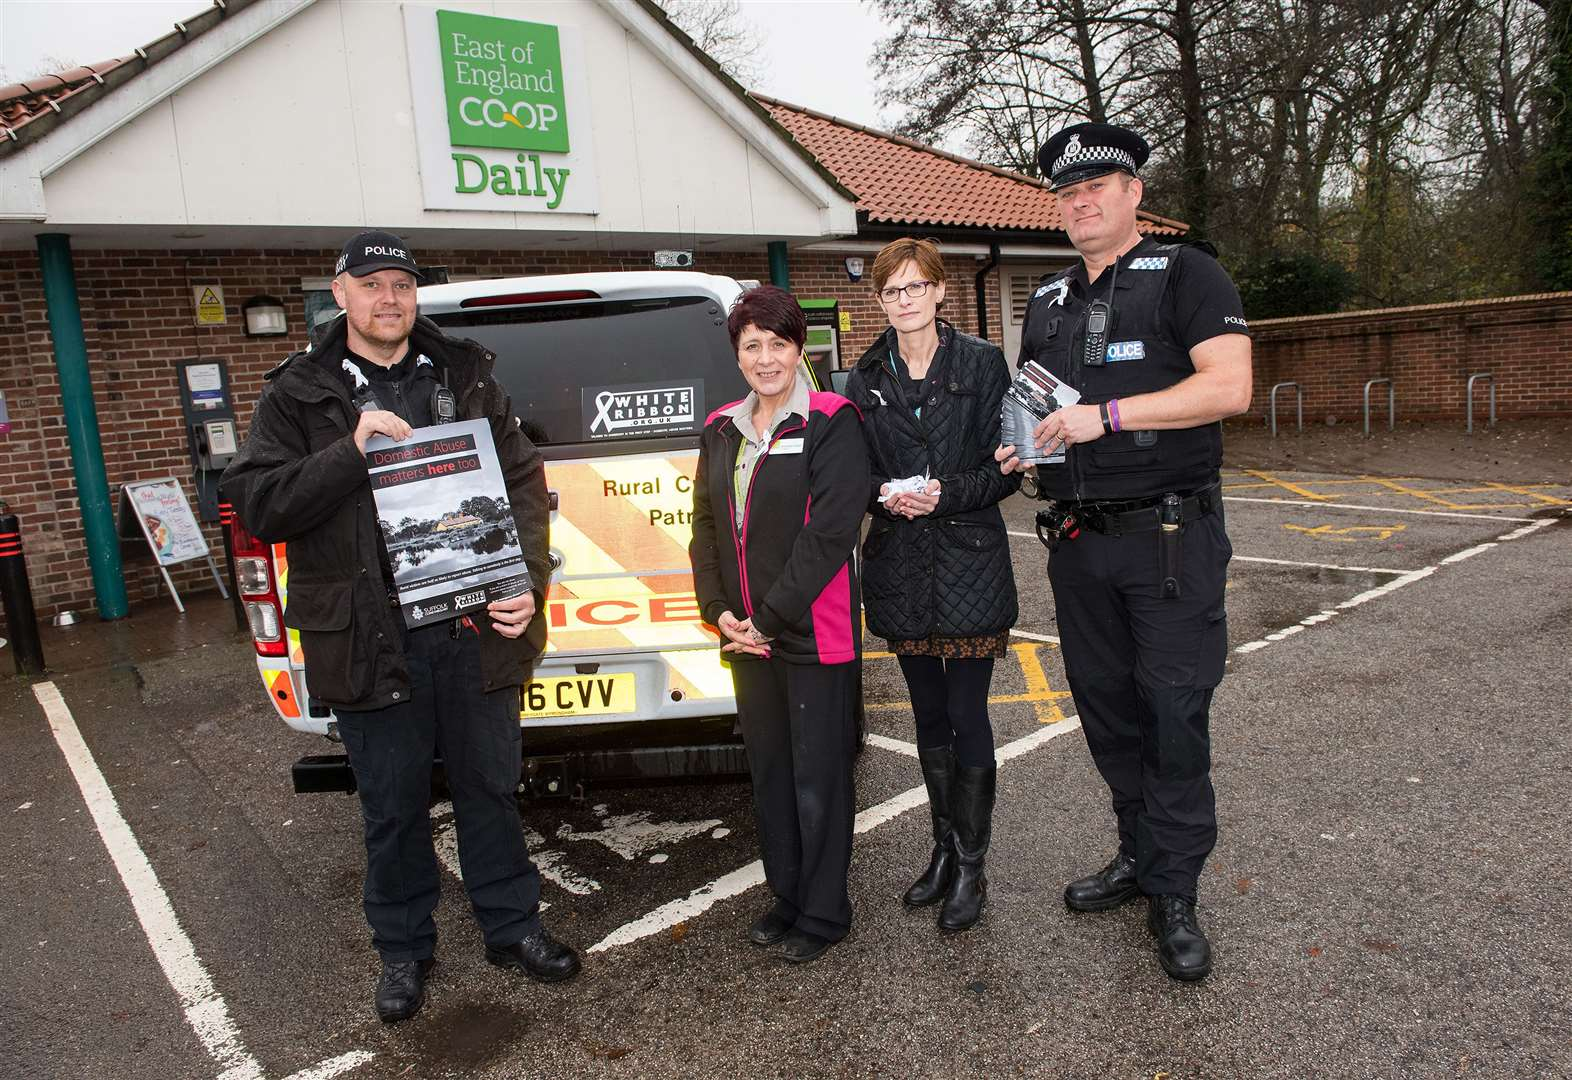 Police and refuge support White Ribbon campaign